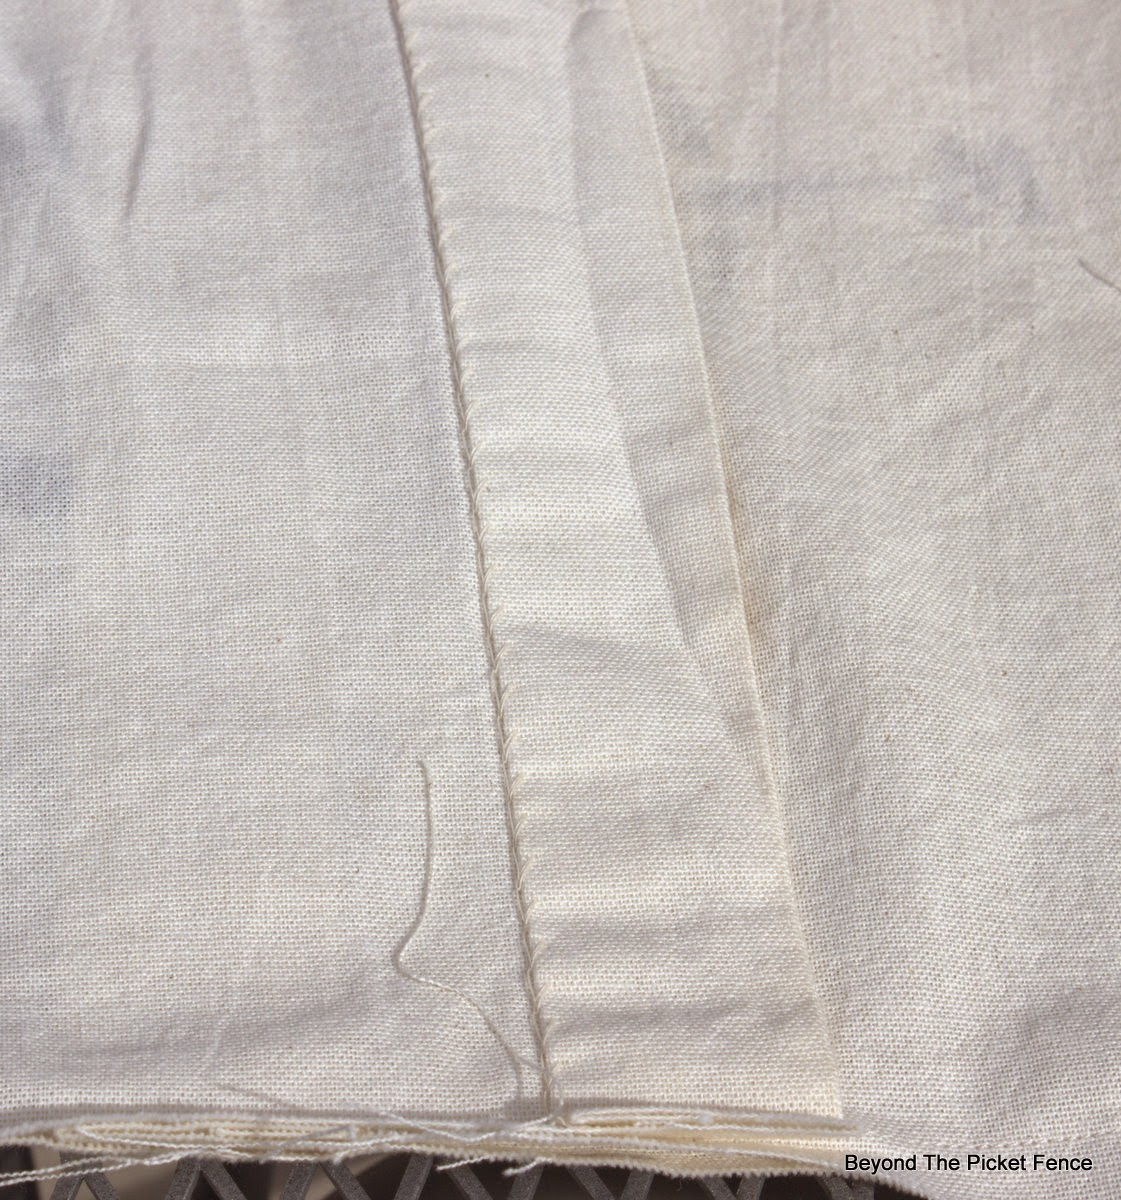 sewing pillows, linen, http://bec4-beyondthepicketfence.blogspot.com/2015/03/project-challenge-linenleather-fabric.html